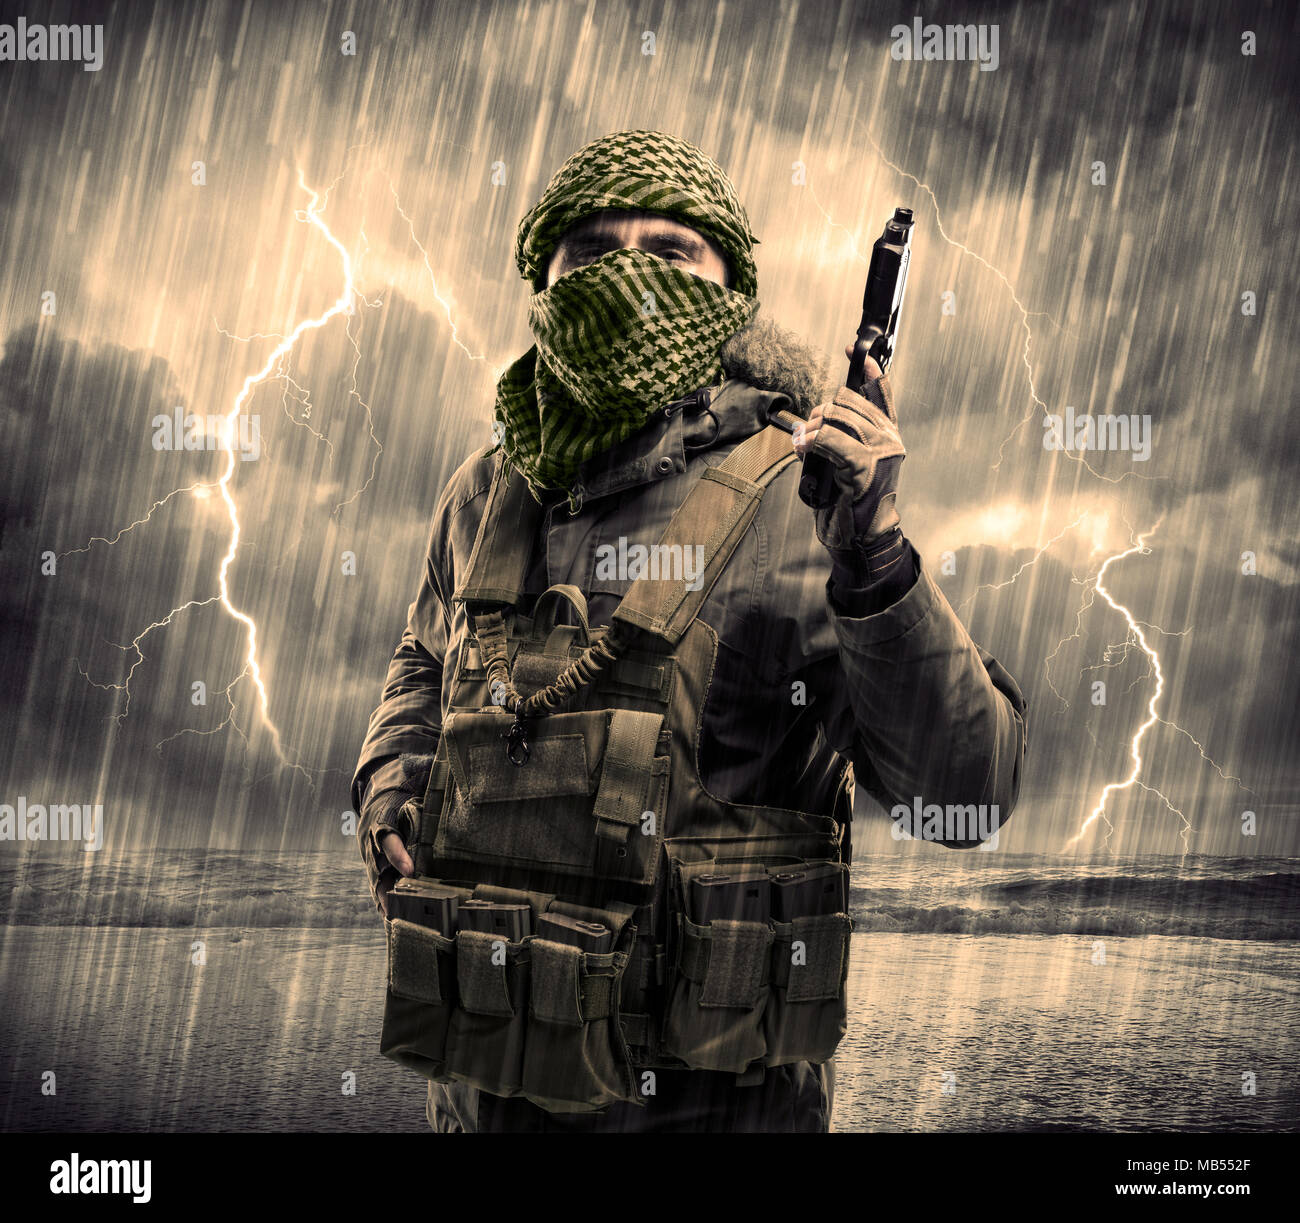 Portrait of a dangerous armed terrorist with mask and gun in a thunderstorm with lightning - Stock Image